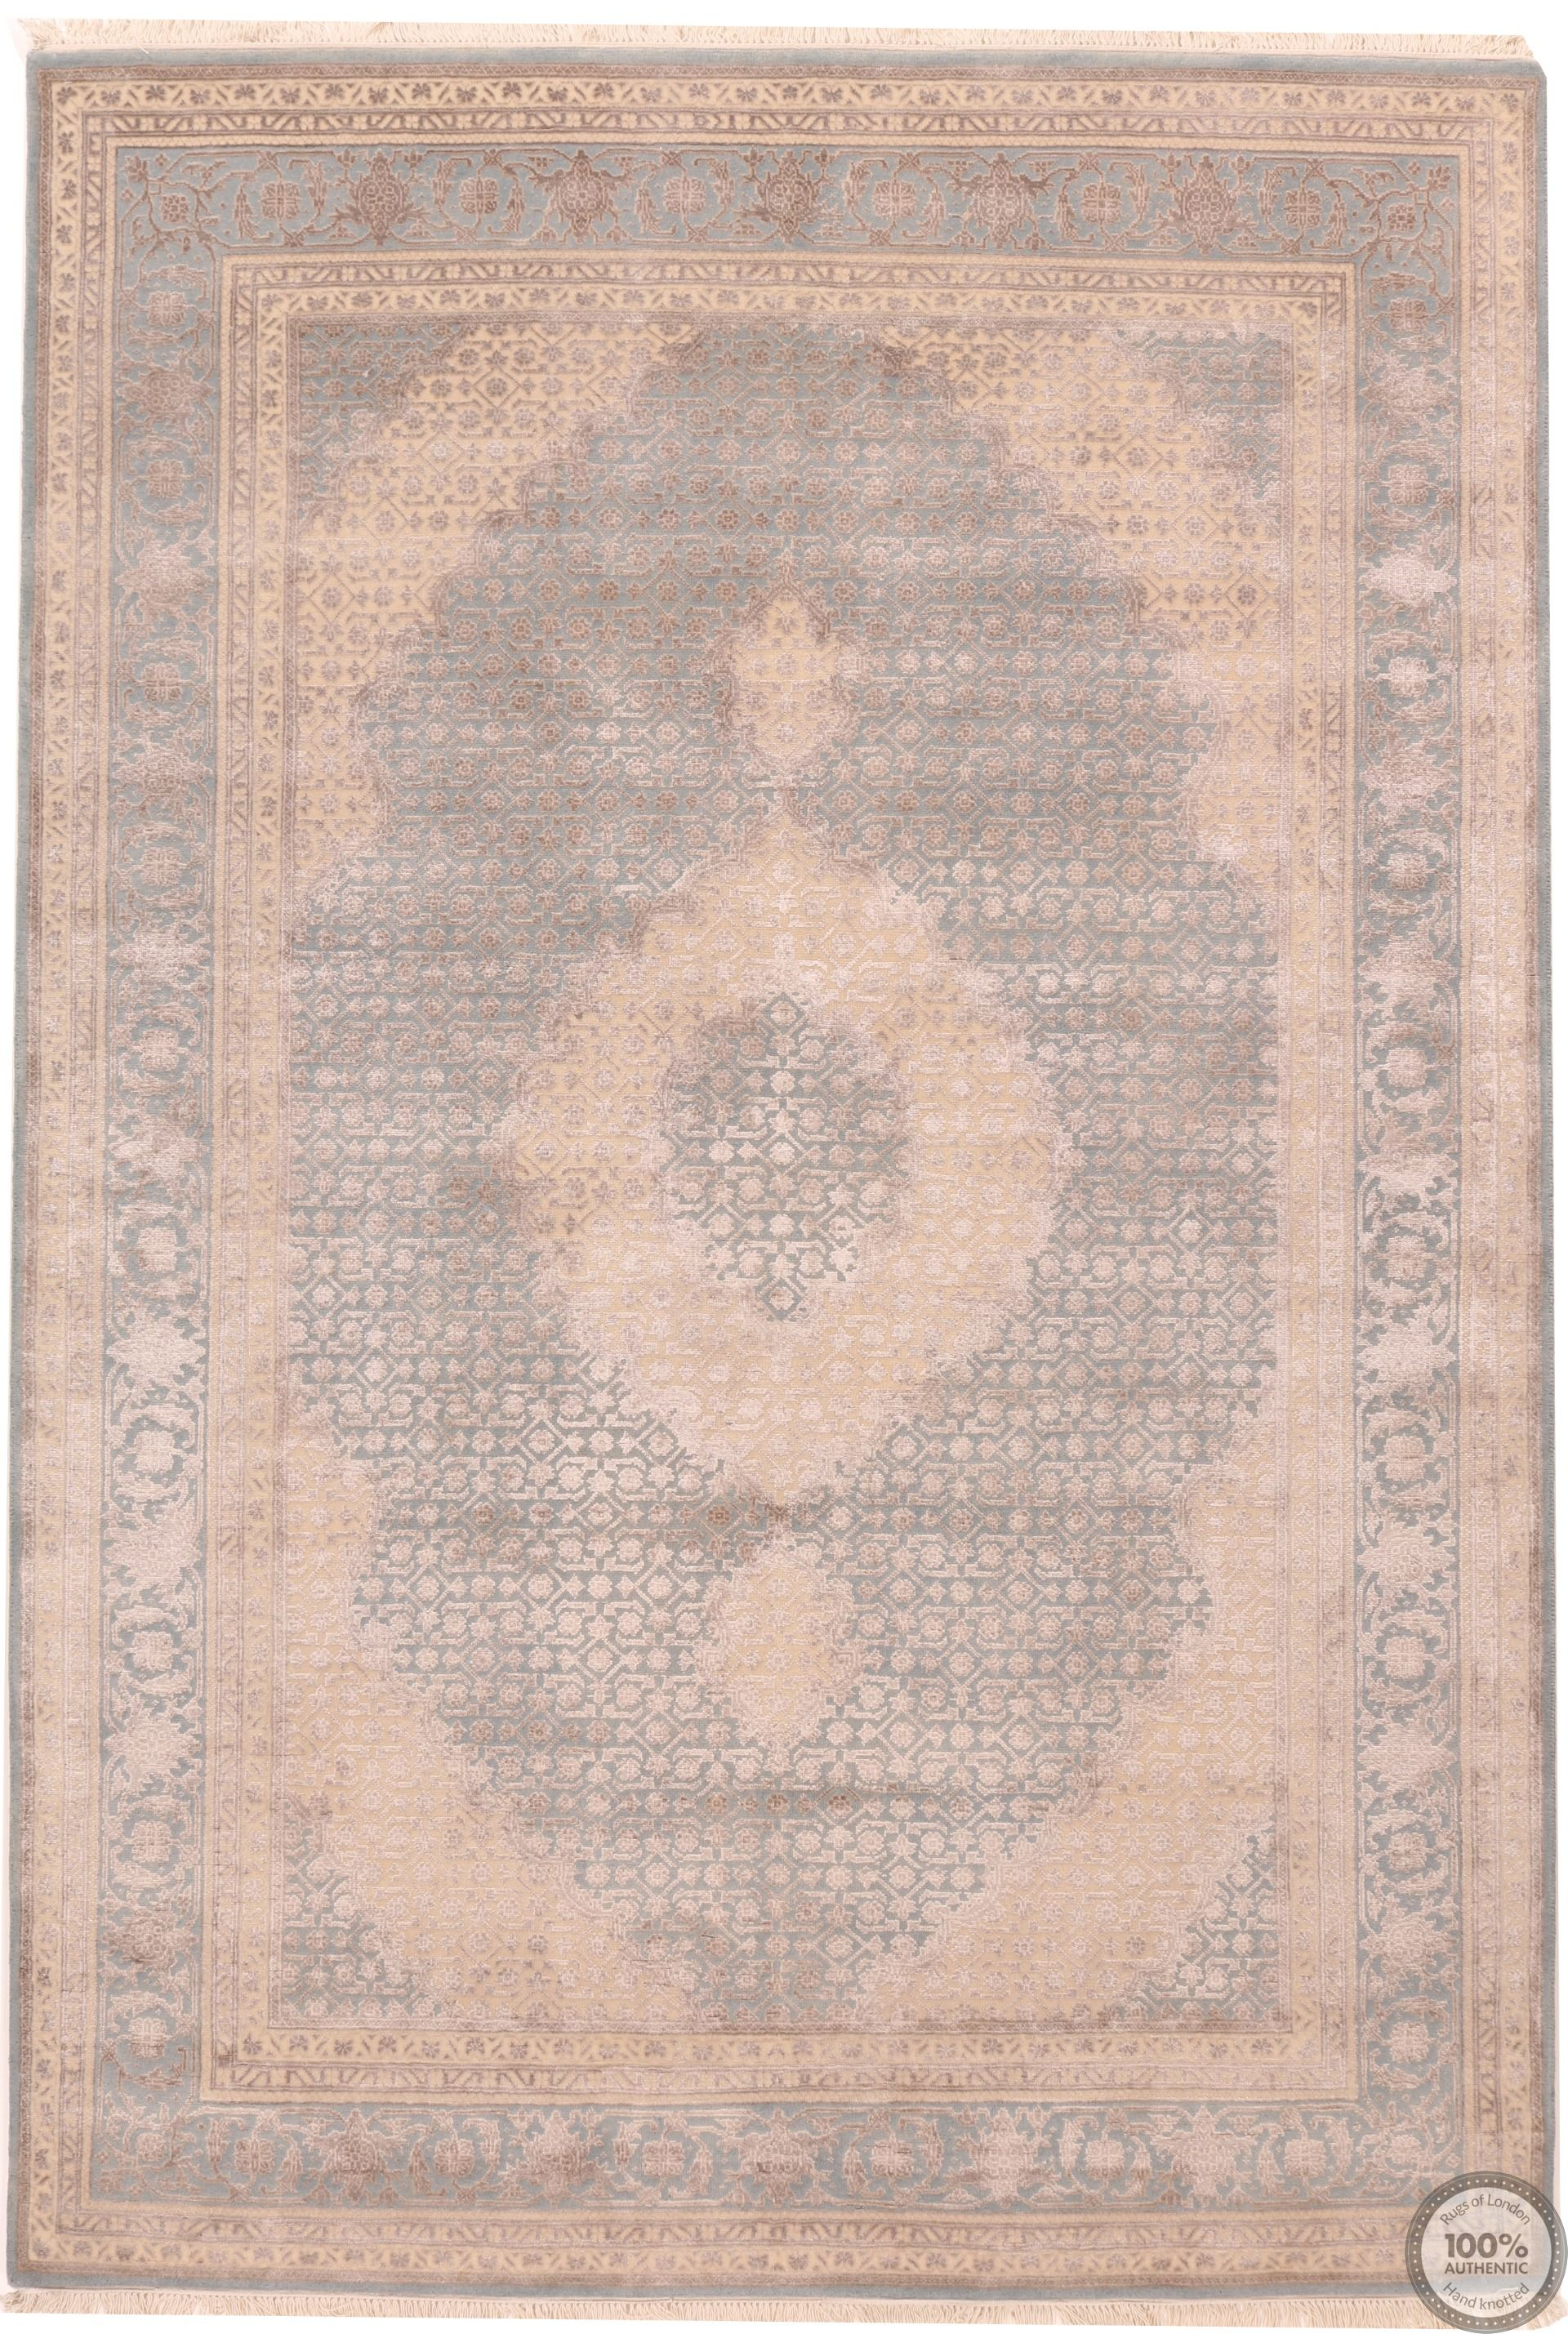 Tabriz design part silk - 8'1 x 5'5